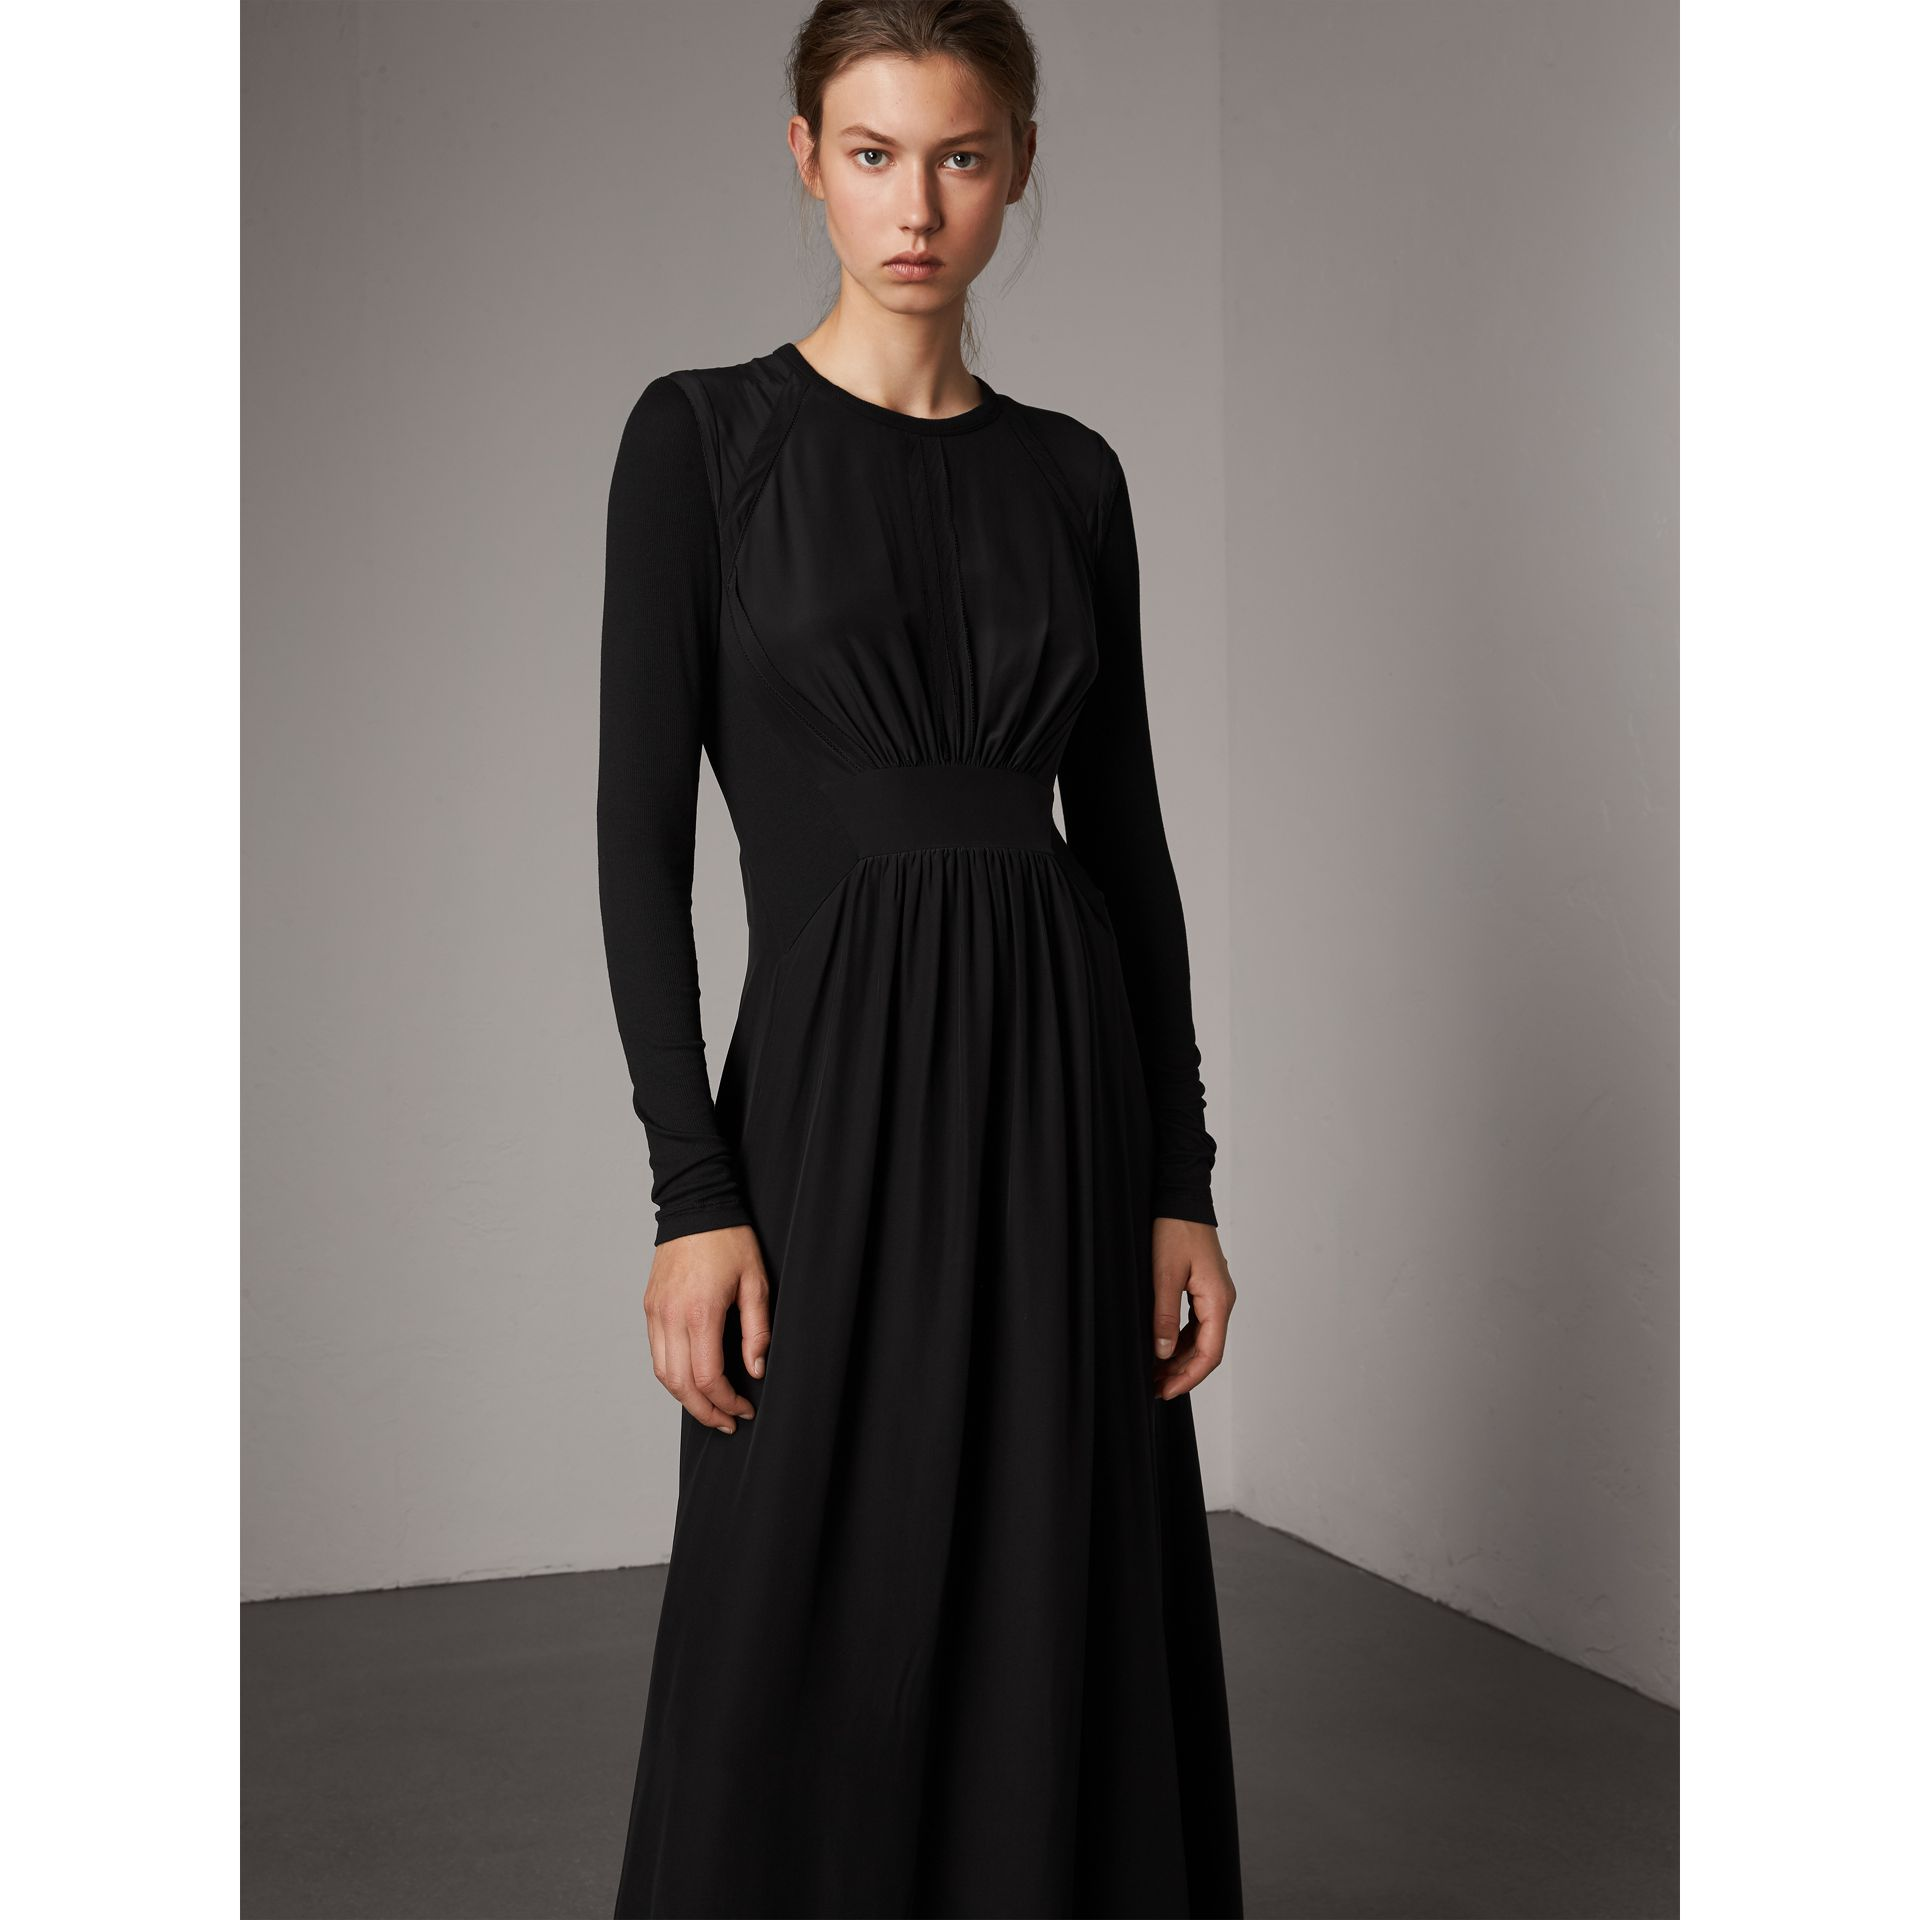 Silk Floor-length Gathered Dress in Black - Women | Burberry United Kingdom - gallery image 5